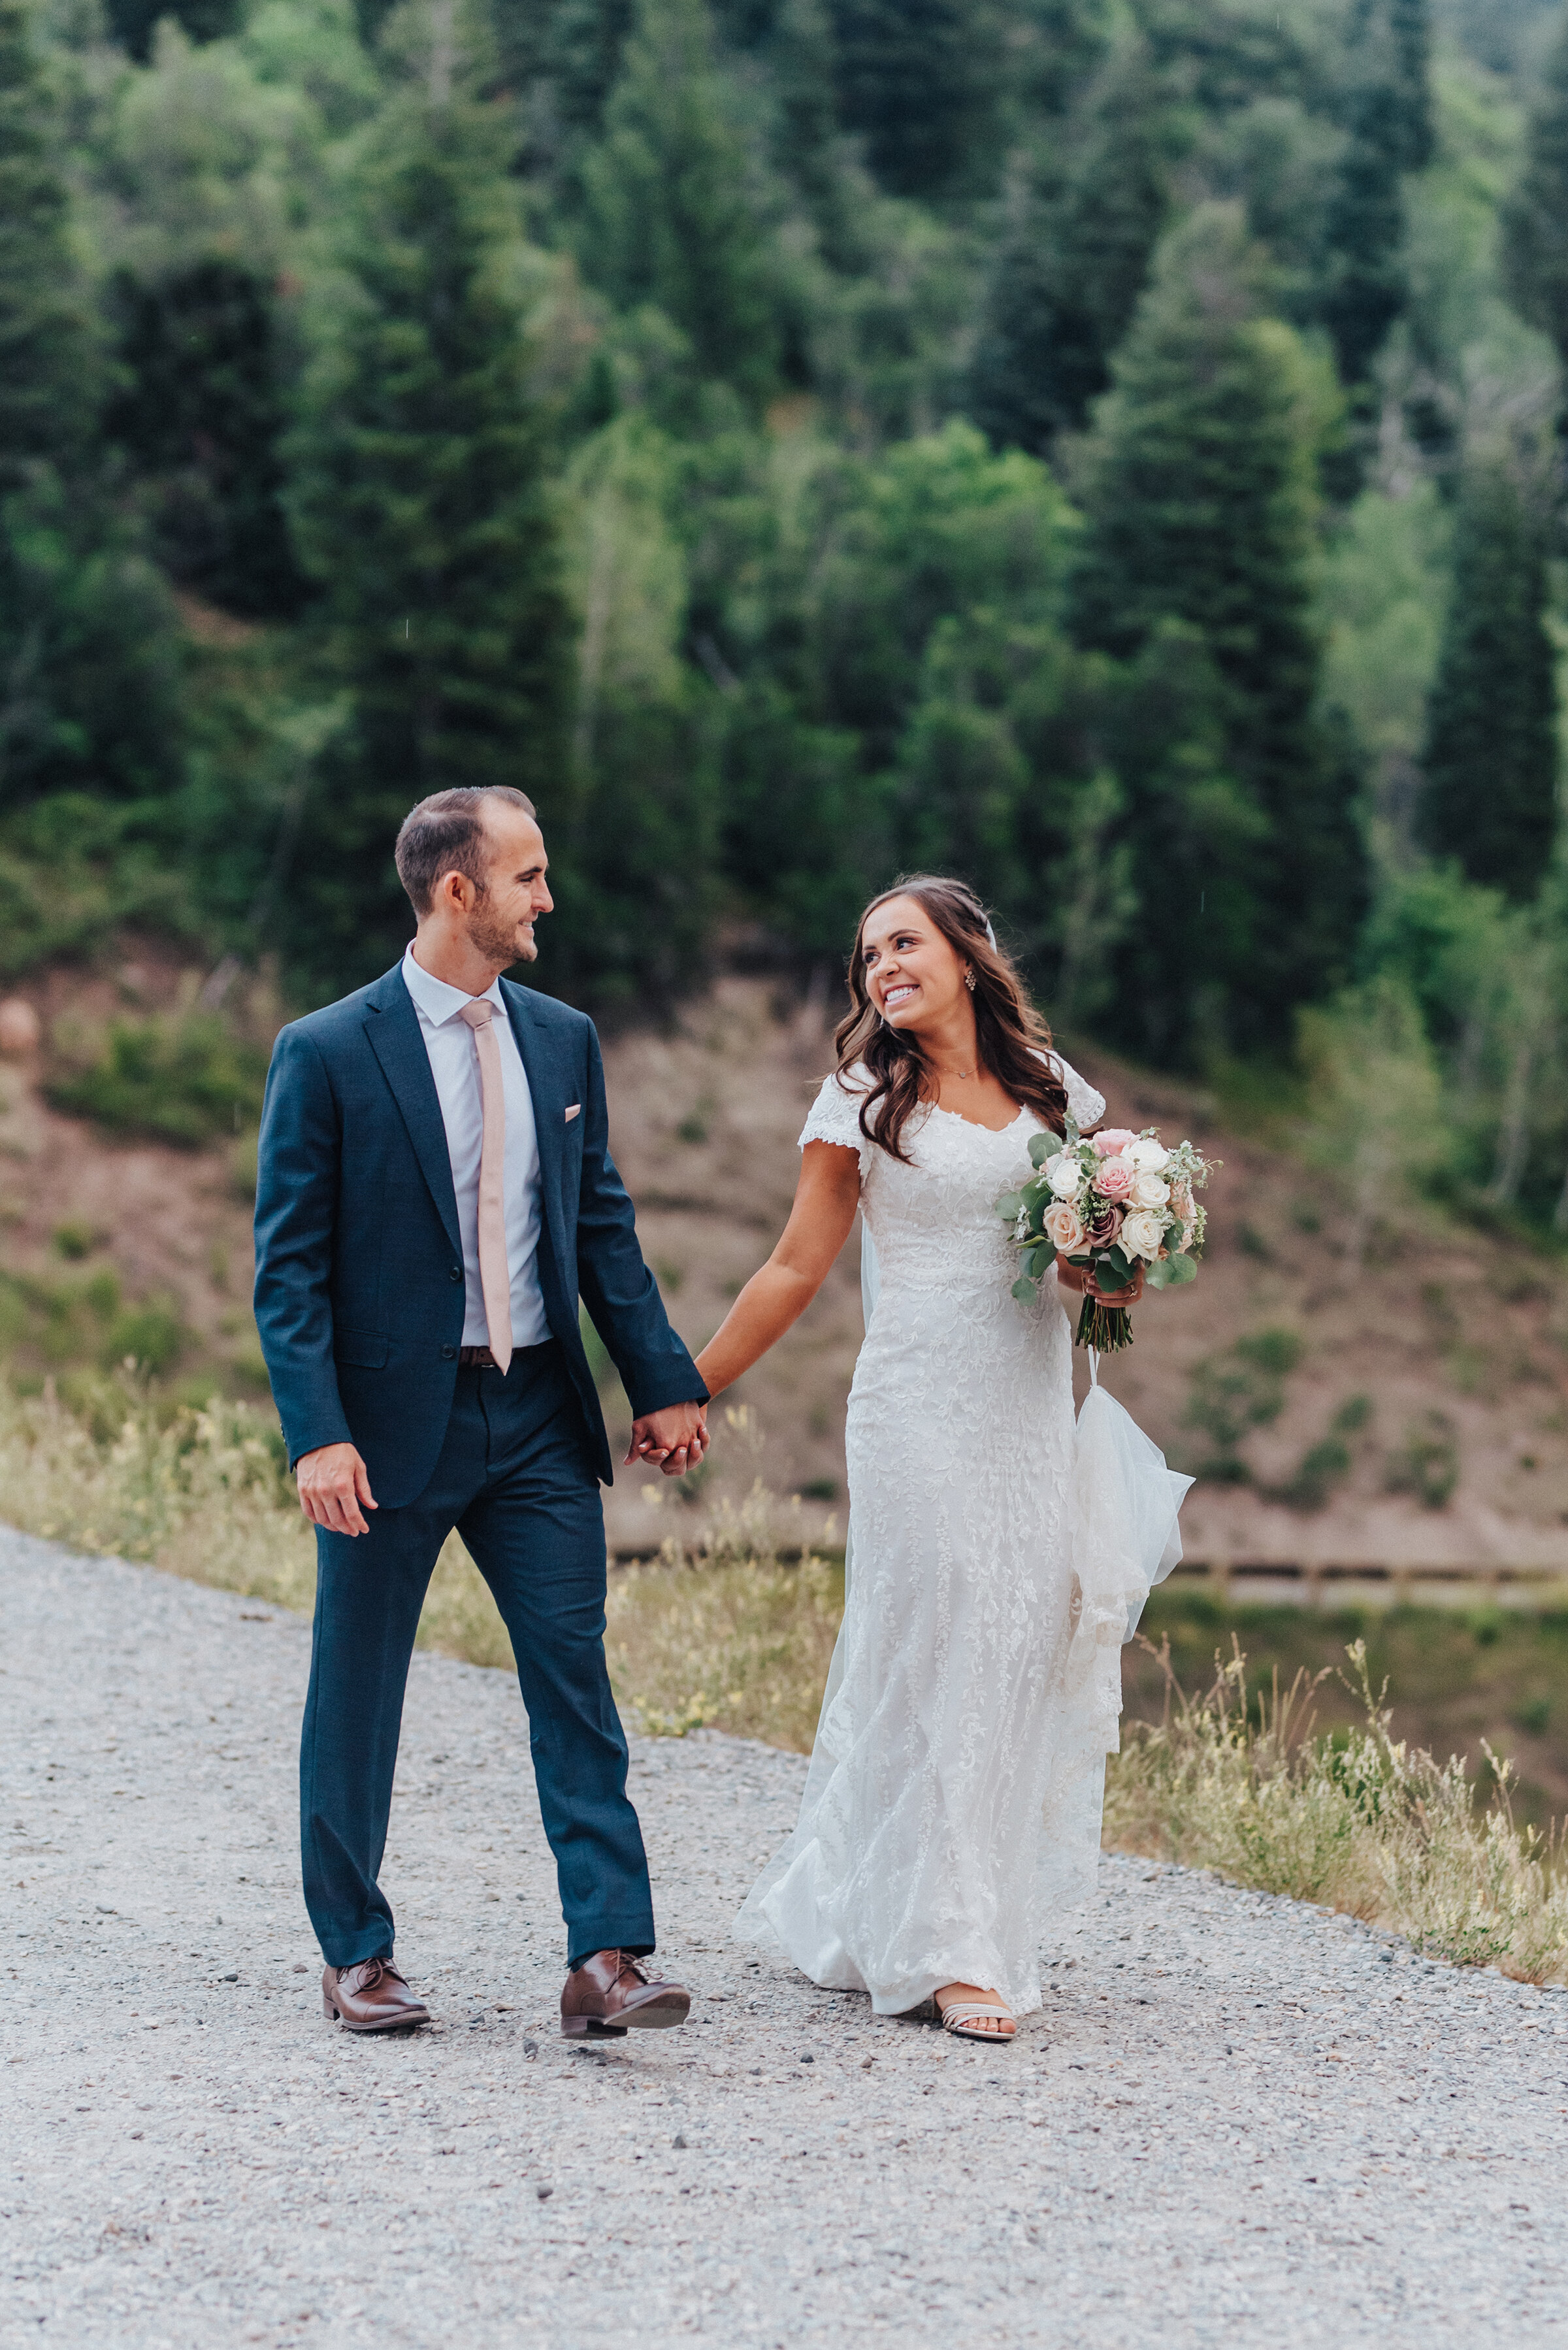 A smiling couple stroll down a paved pathway that surrounds the Tibble Fork Reservoir in American Fork canyon while holding hands. Navy suit light pink tie light pink floral bouquet exchanging glances evergreen trees #husbandandwife #younglove #tibbleforkreservoir #utahwedding #americanforkcanyon #coupleshoot #formals #weddingphotography #couplesgoals #couplephotography #weddingphotographer #couplesphotography #groom #bride